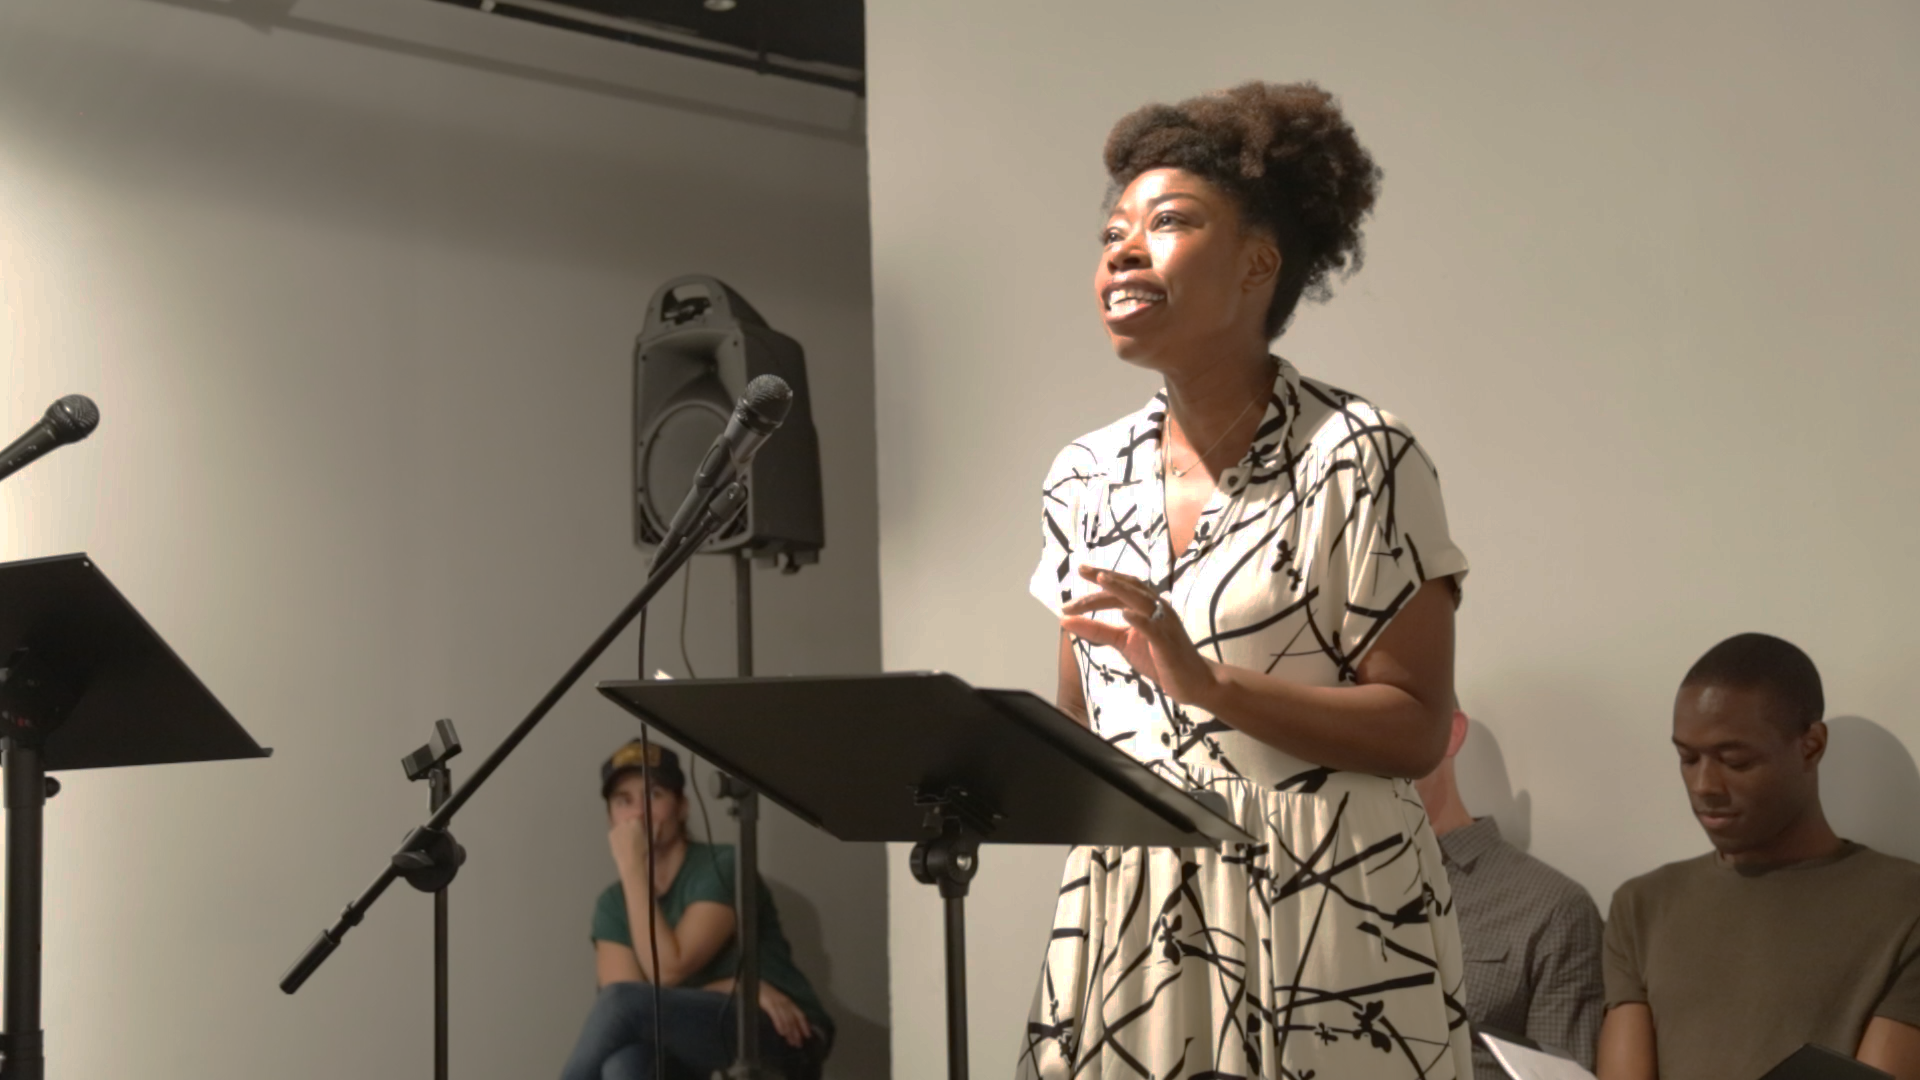 Akyiaa Wilson performing work by Christina Quintana (CQ) at Live Event of QAM 2016-2017 Annual Exhibtion 01 (Photo by Eric McNatt)